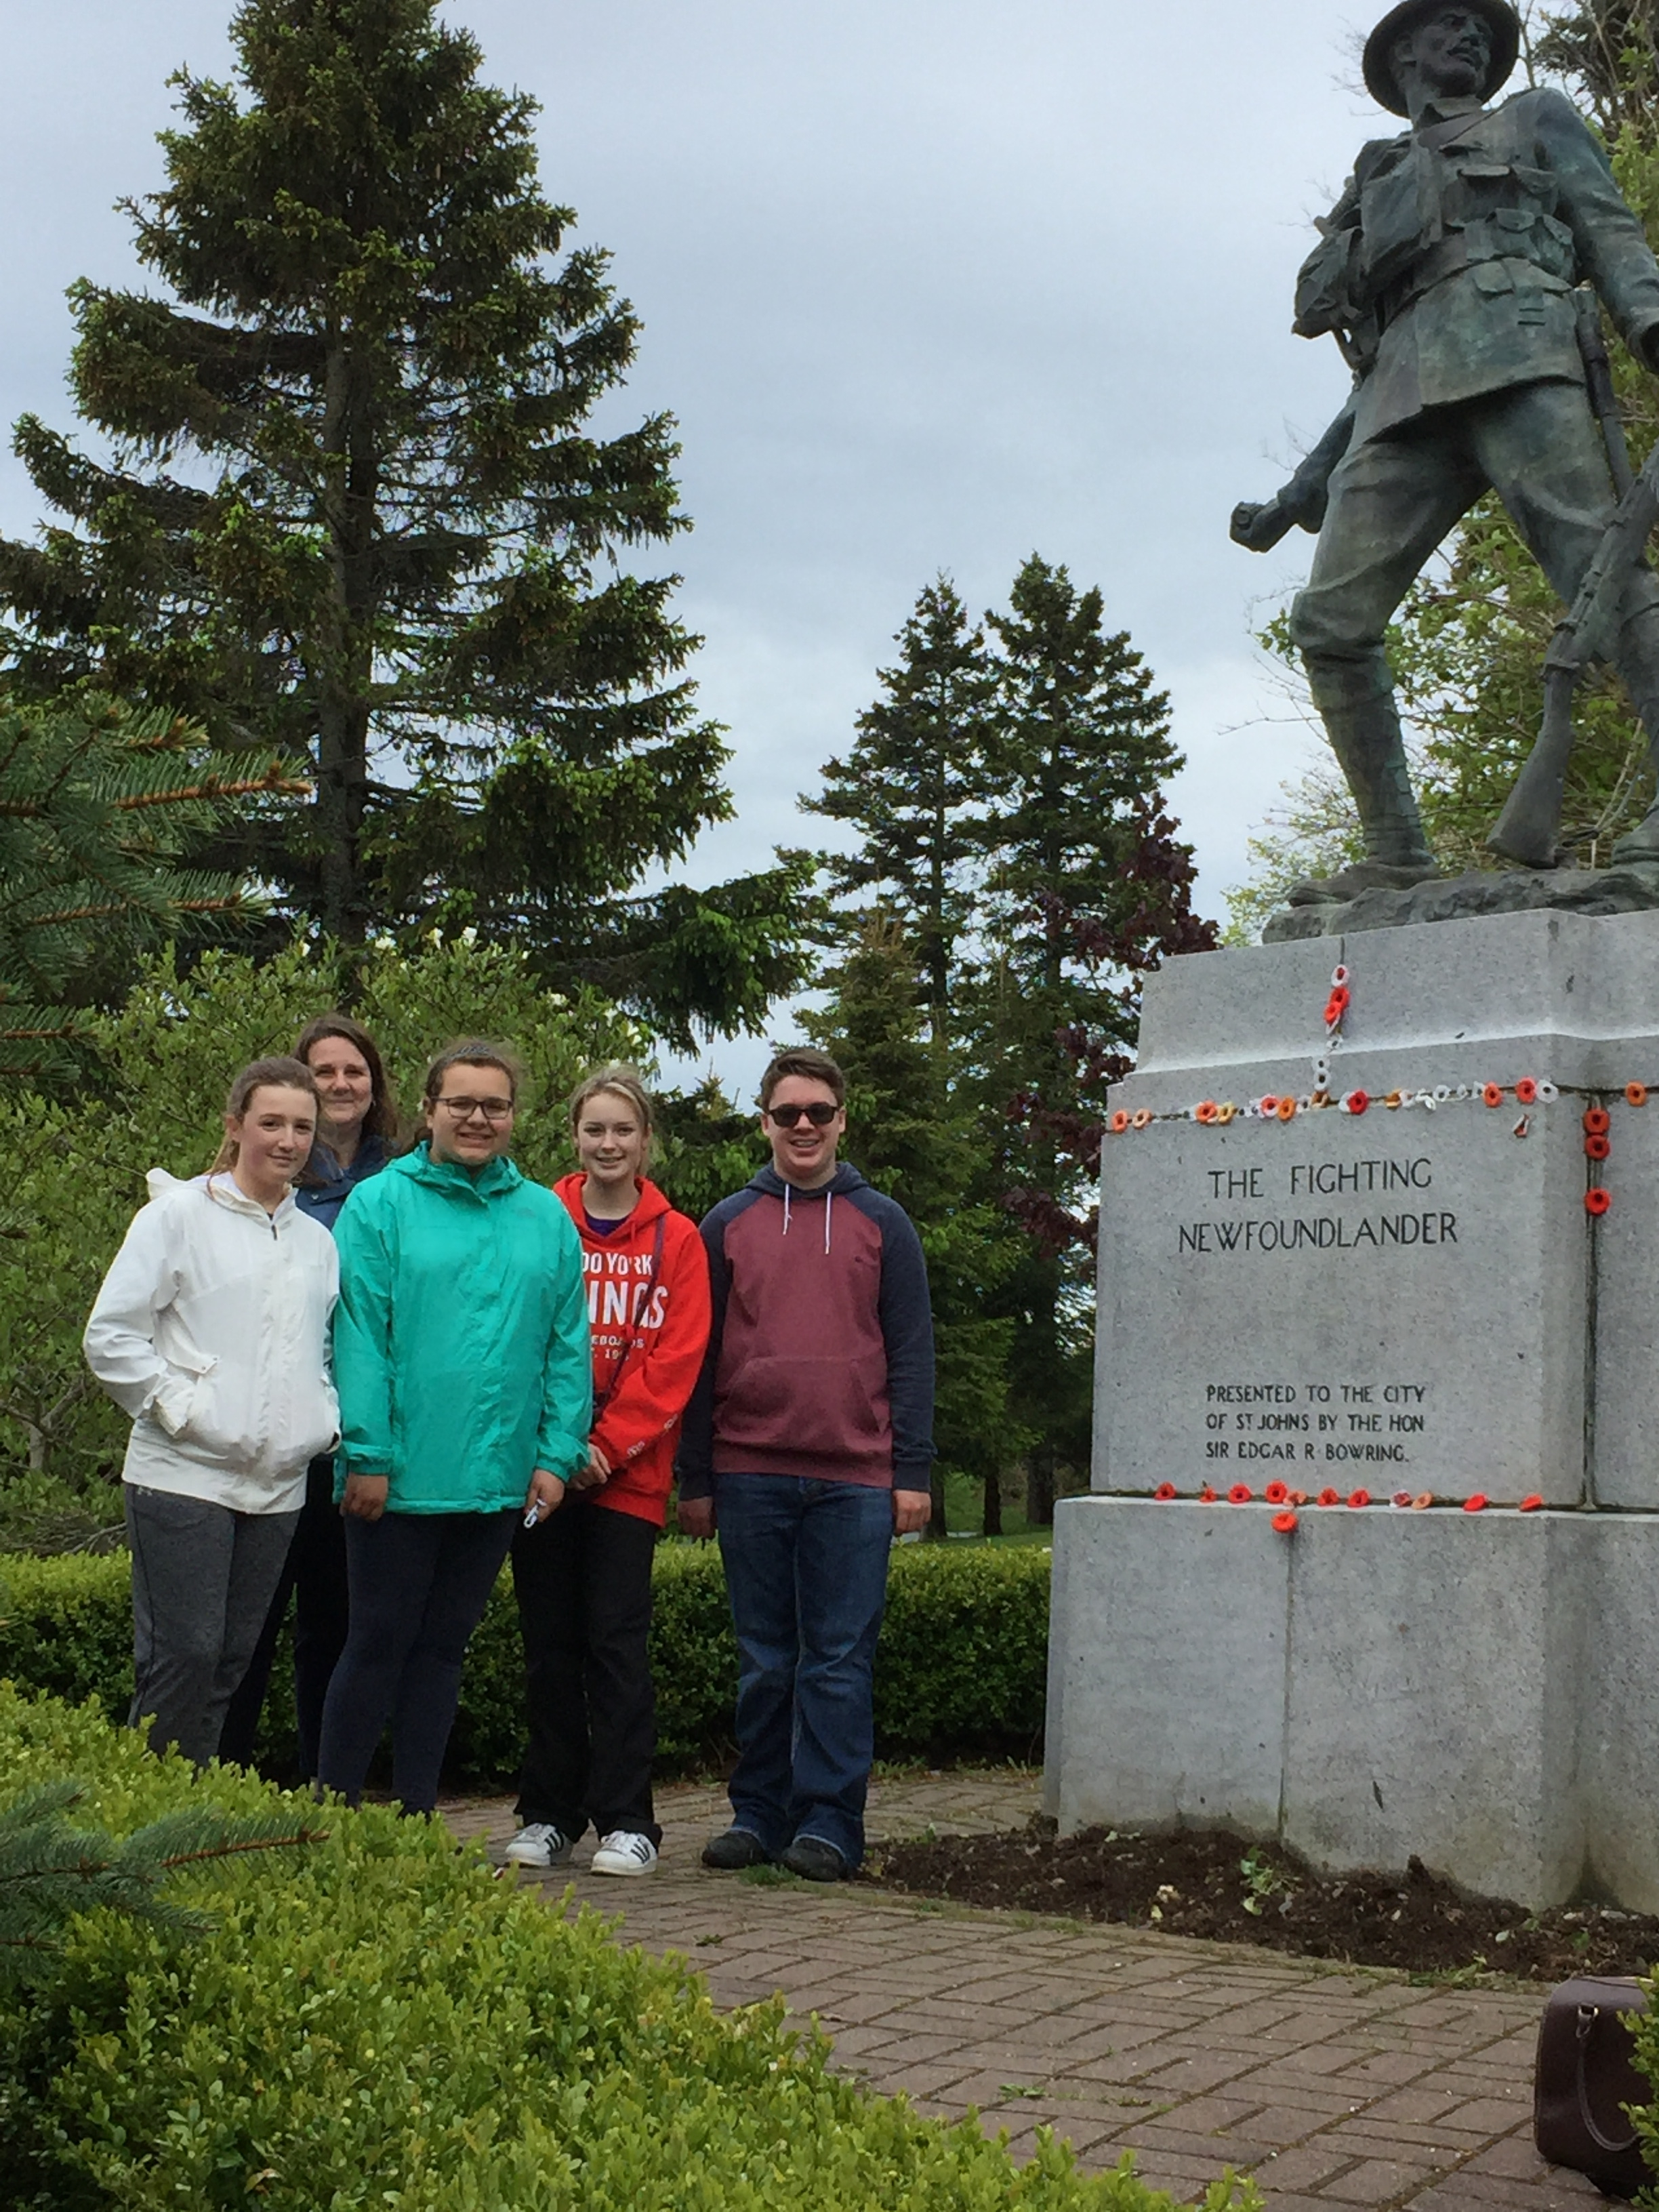 Student ambassadors from the west coast and chaparone Ms. Pittman-Baker at the Fighting Newfoundlander monument at Bowring Park in St. John's.